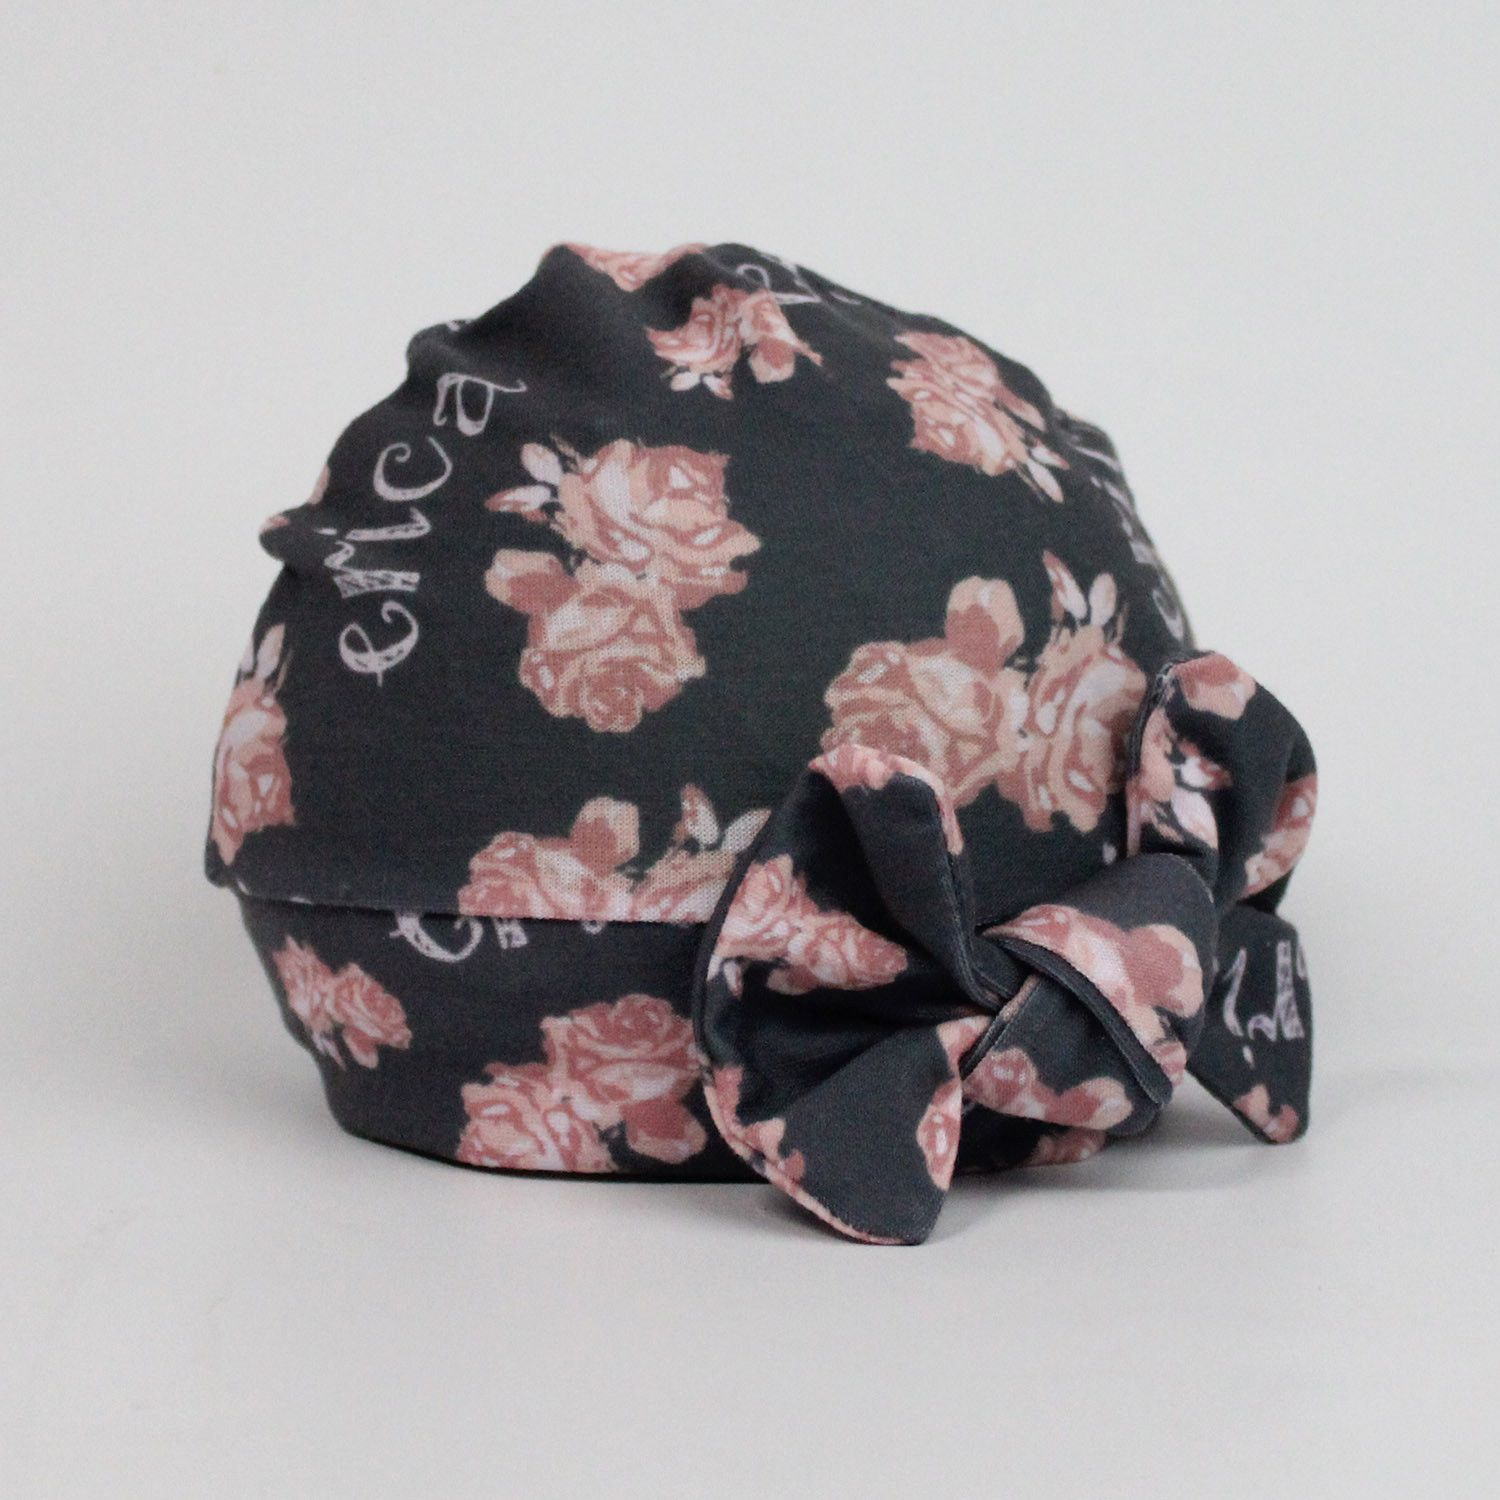 d4660ef54f4 Personalized baby hat or headband - Custom design printed on Jersey Knit  fabric - Vintage Floral